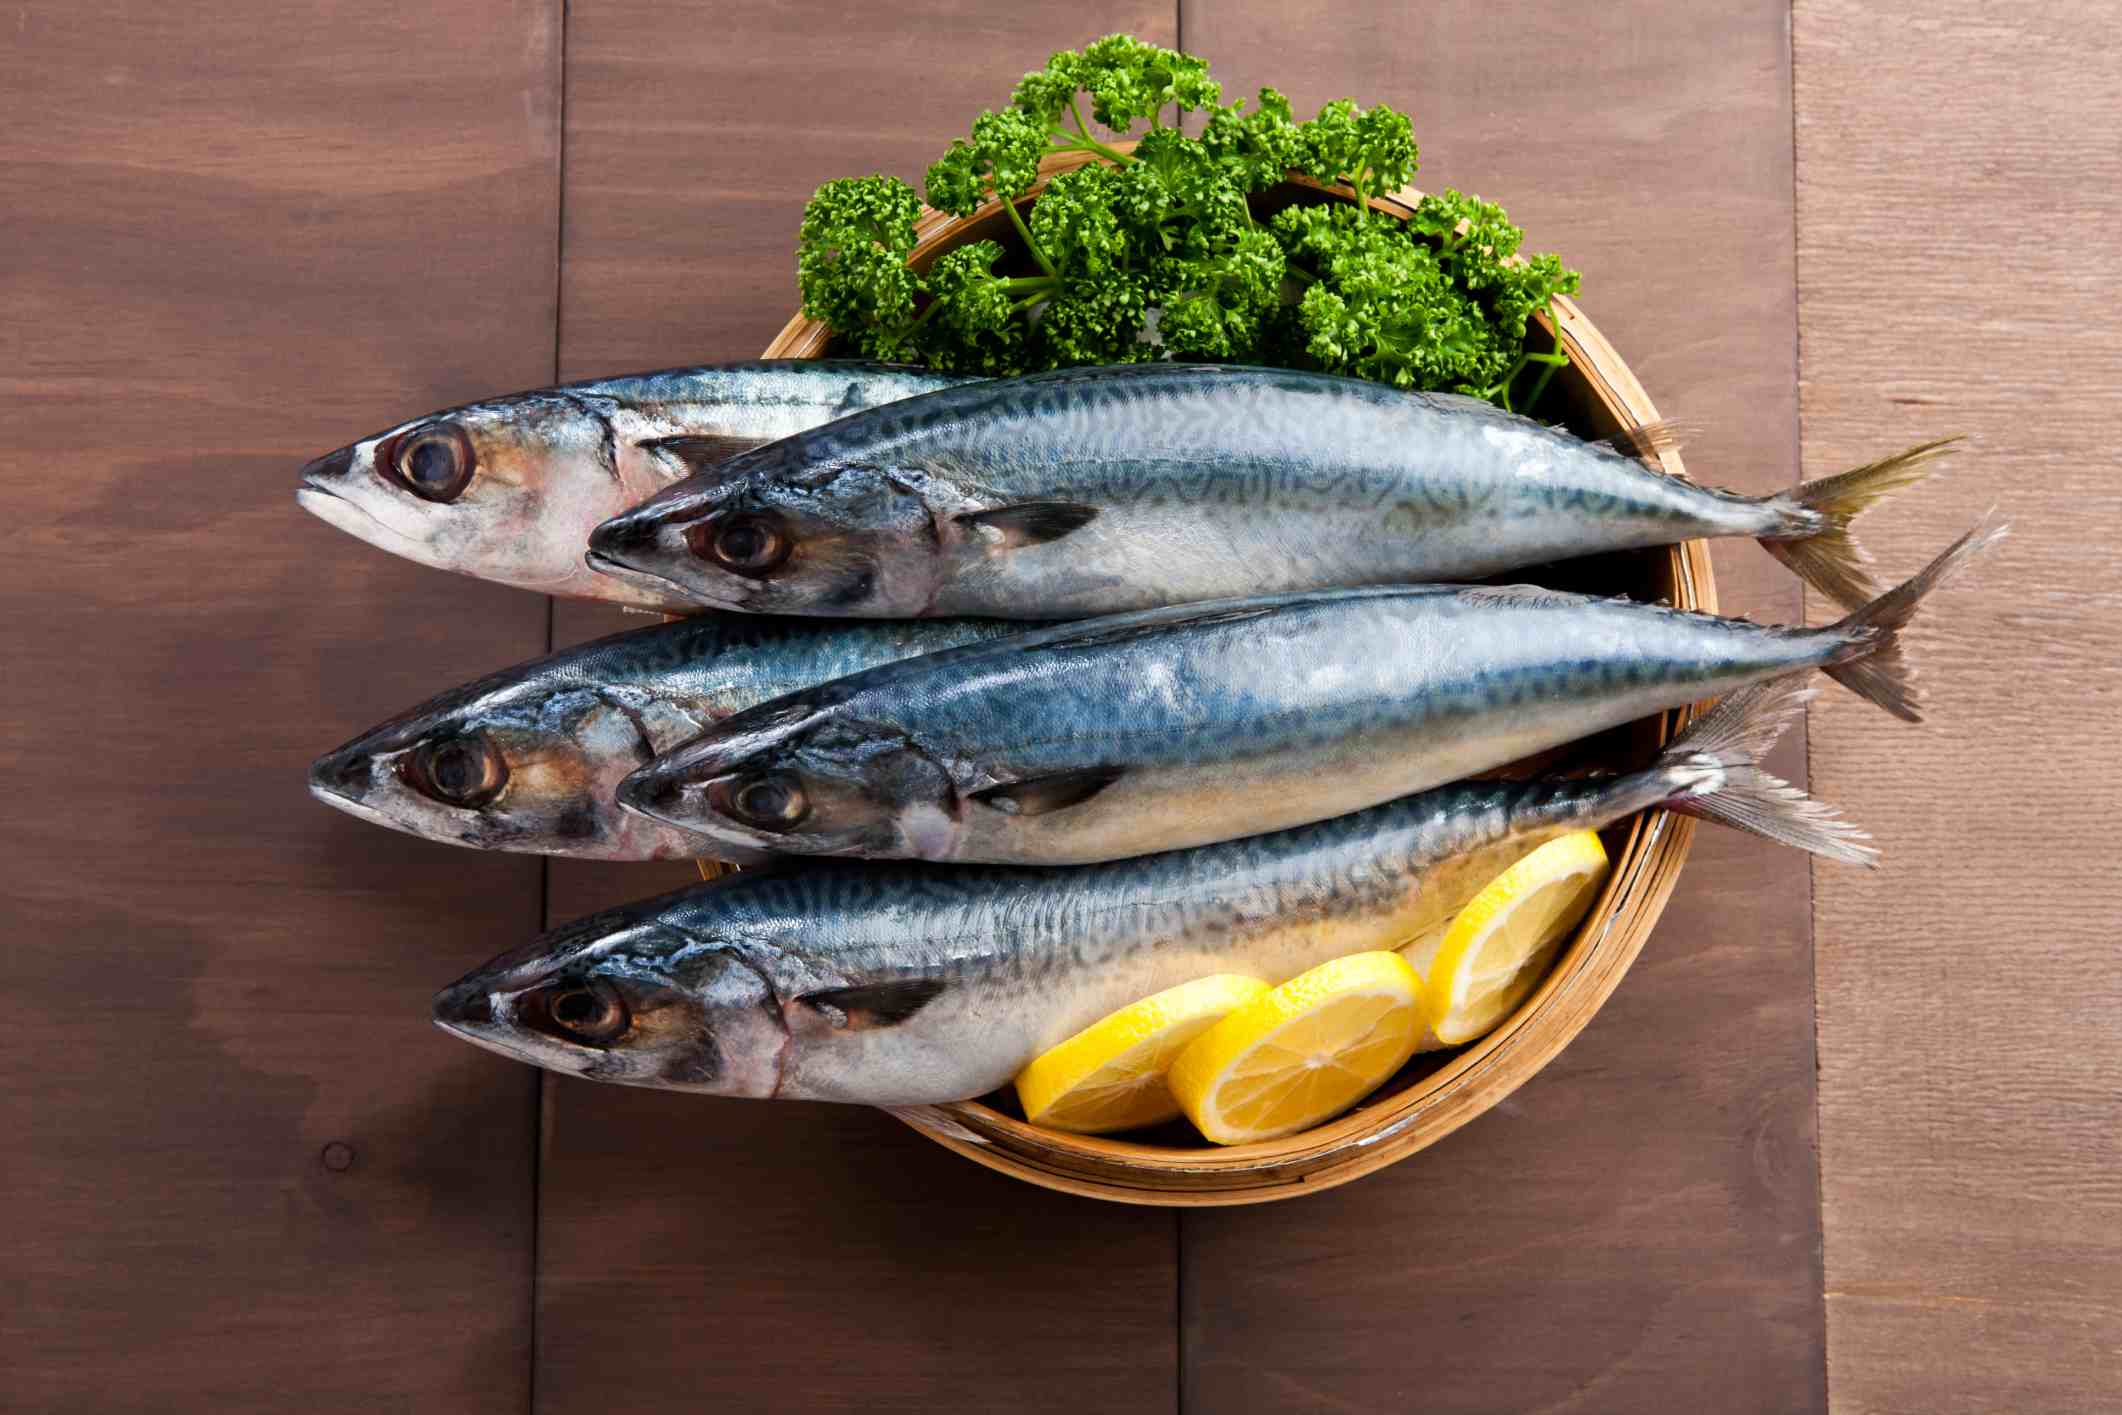 Fish for Omega-3 Fatty Acids